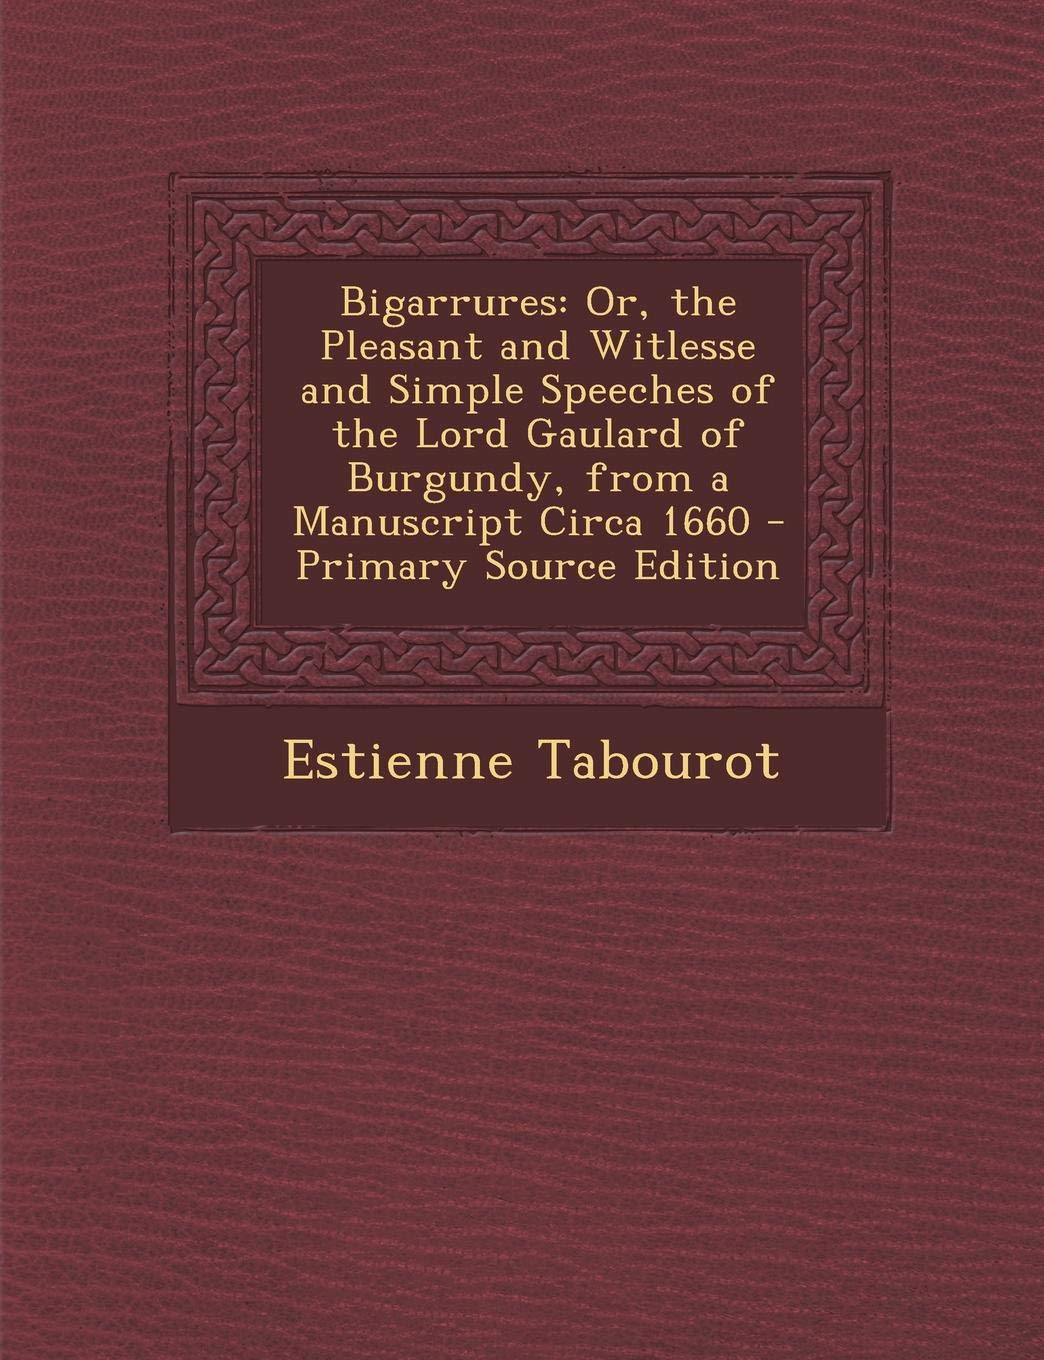 Bigarrures: Or, the Pleasant and Witlesse and Simple